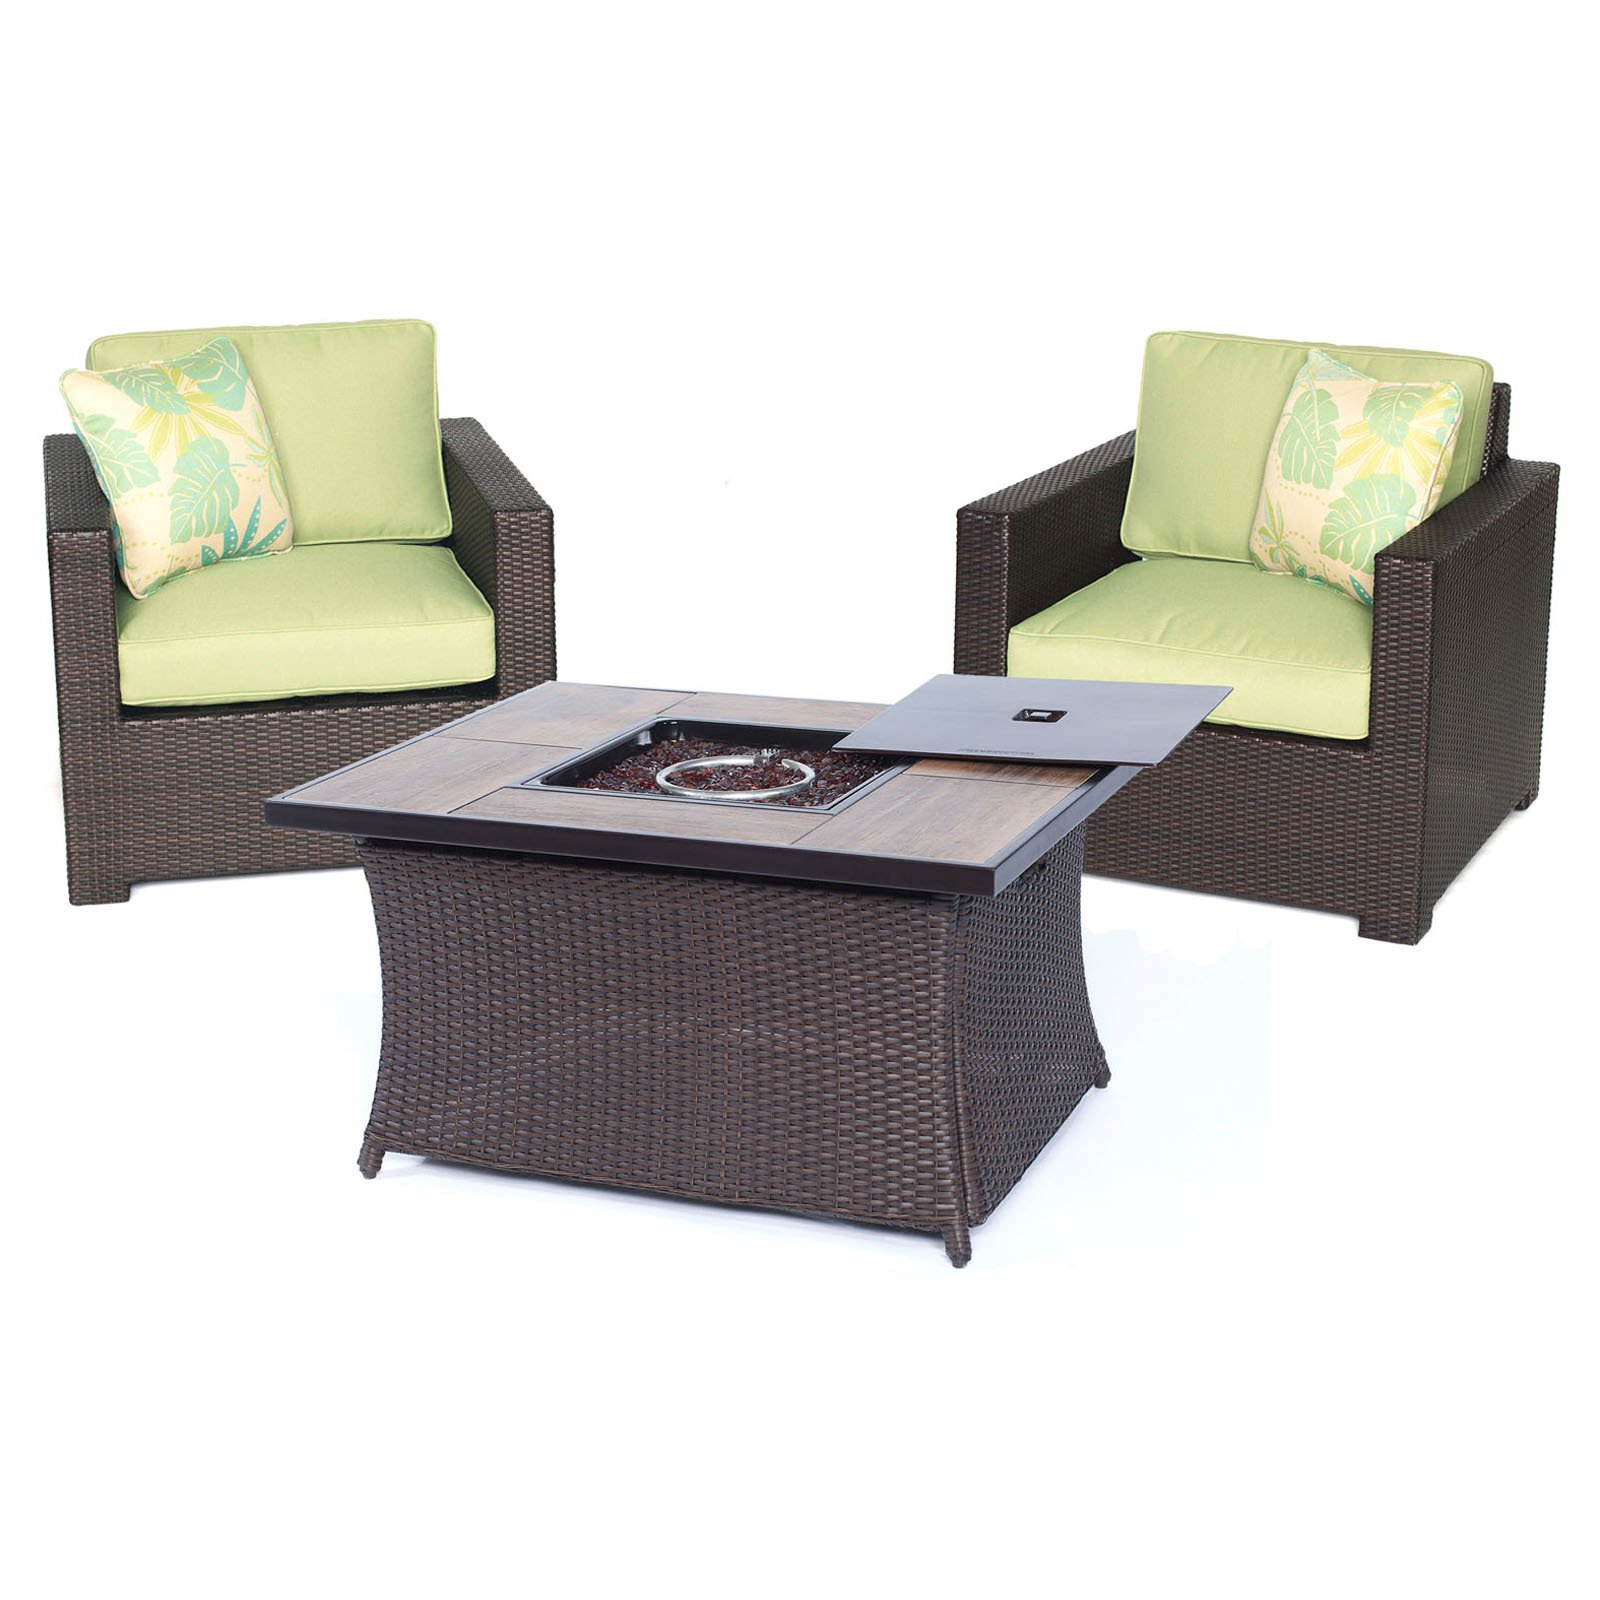 Hanover Metropolitan 3-Piece Woven Fire Pit Chat Set with Glazed Faux-Wood Tile Top